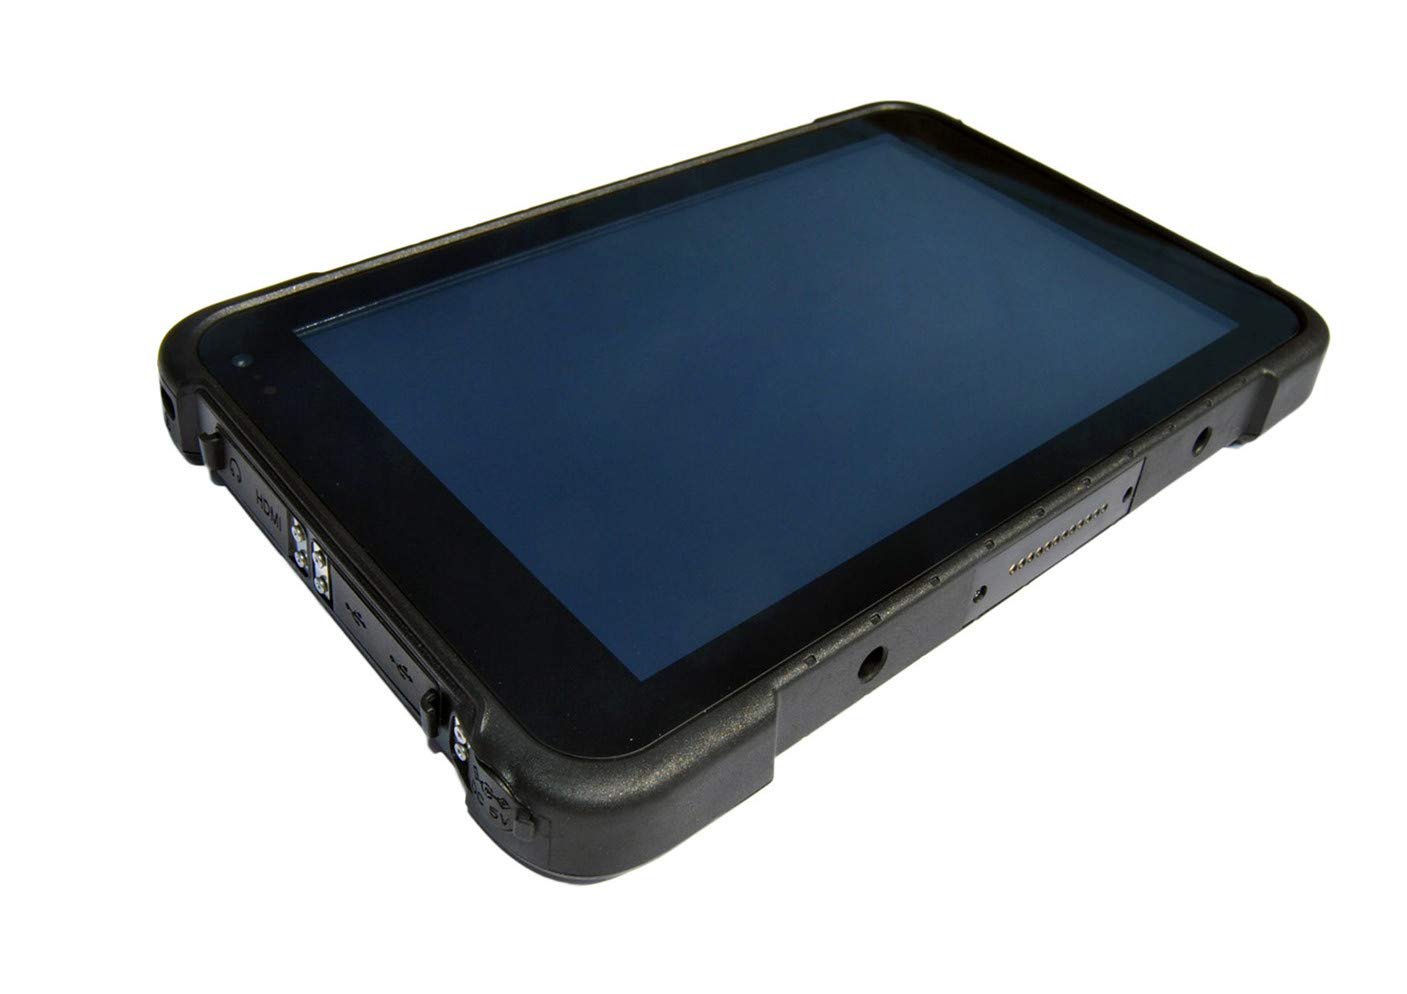 Vanquisher 8-Inch Industrial Rugged Tablet PC, Windows 10 / GPS GNSS / 4G LTE/Drop Survival, for Enterprise Field Mobility